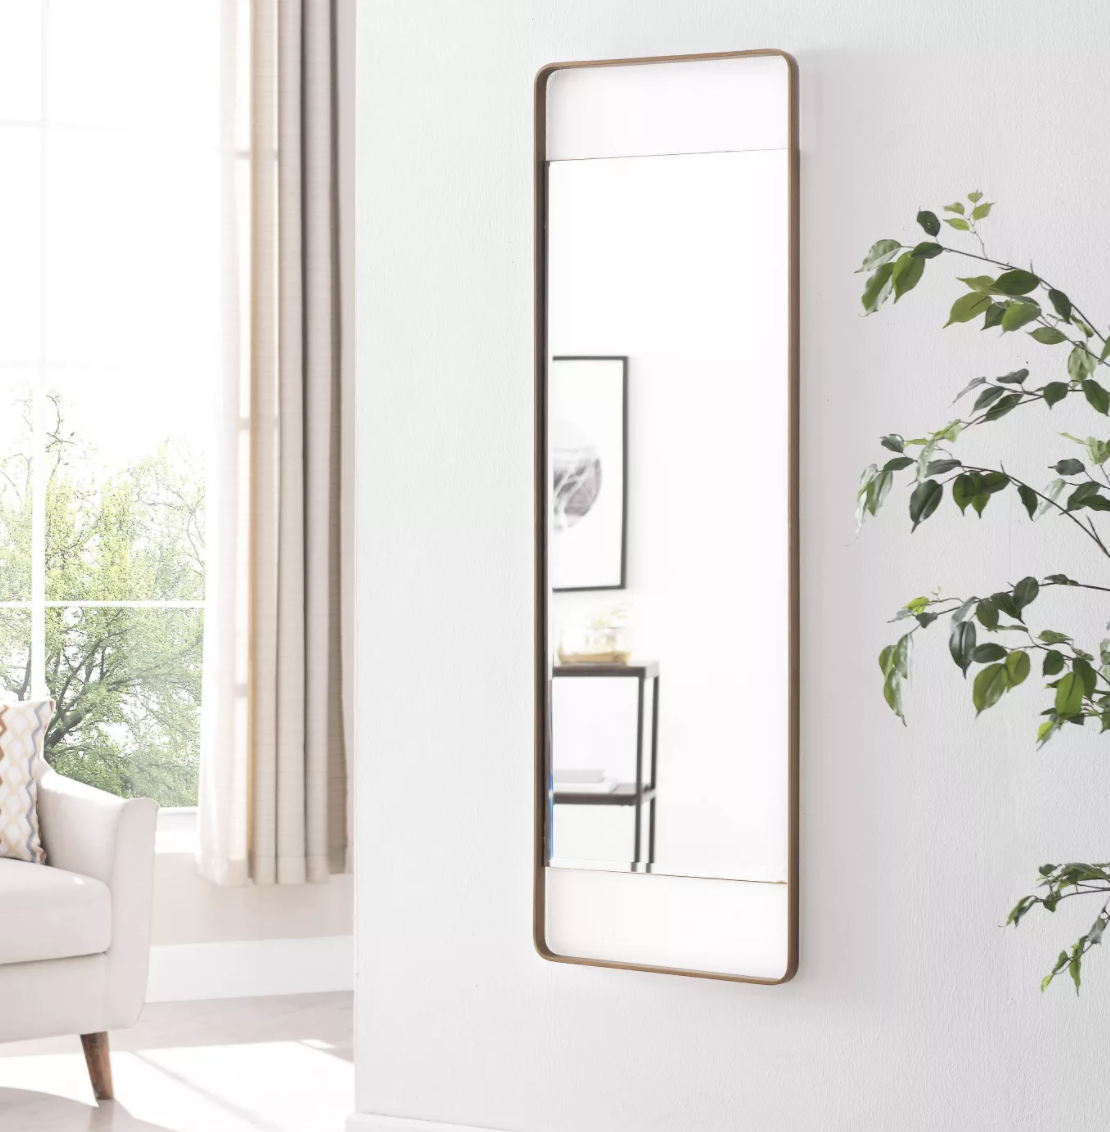 the gold-framed mirror mounted on a wall